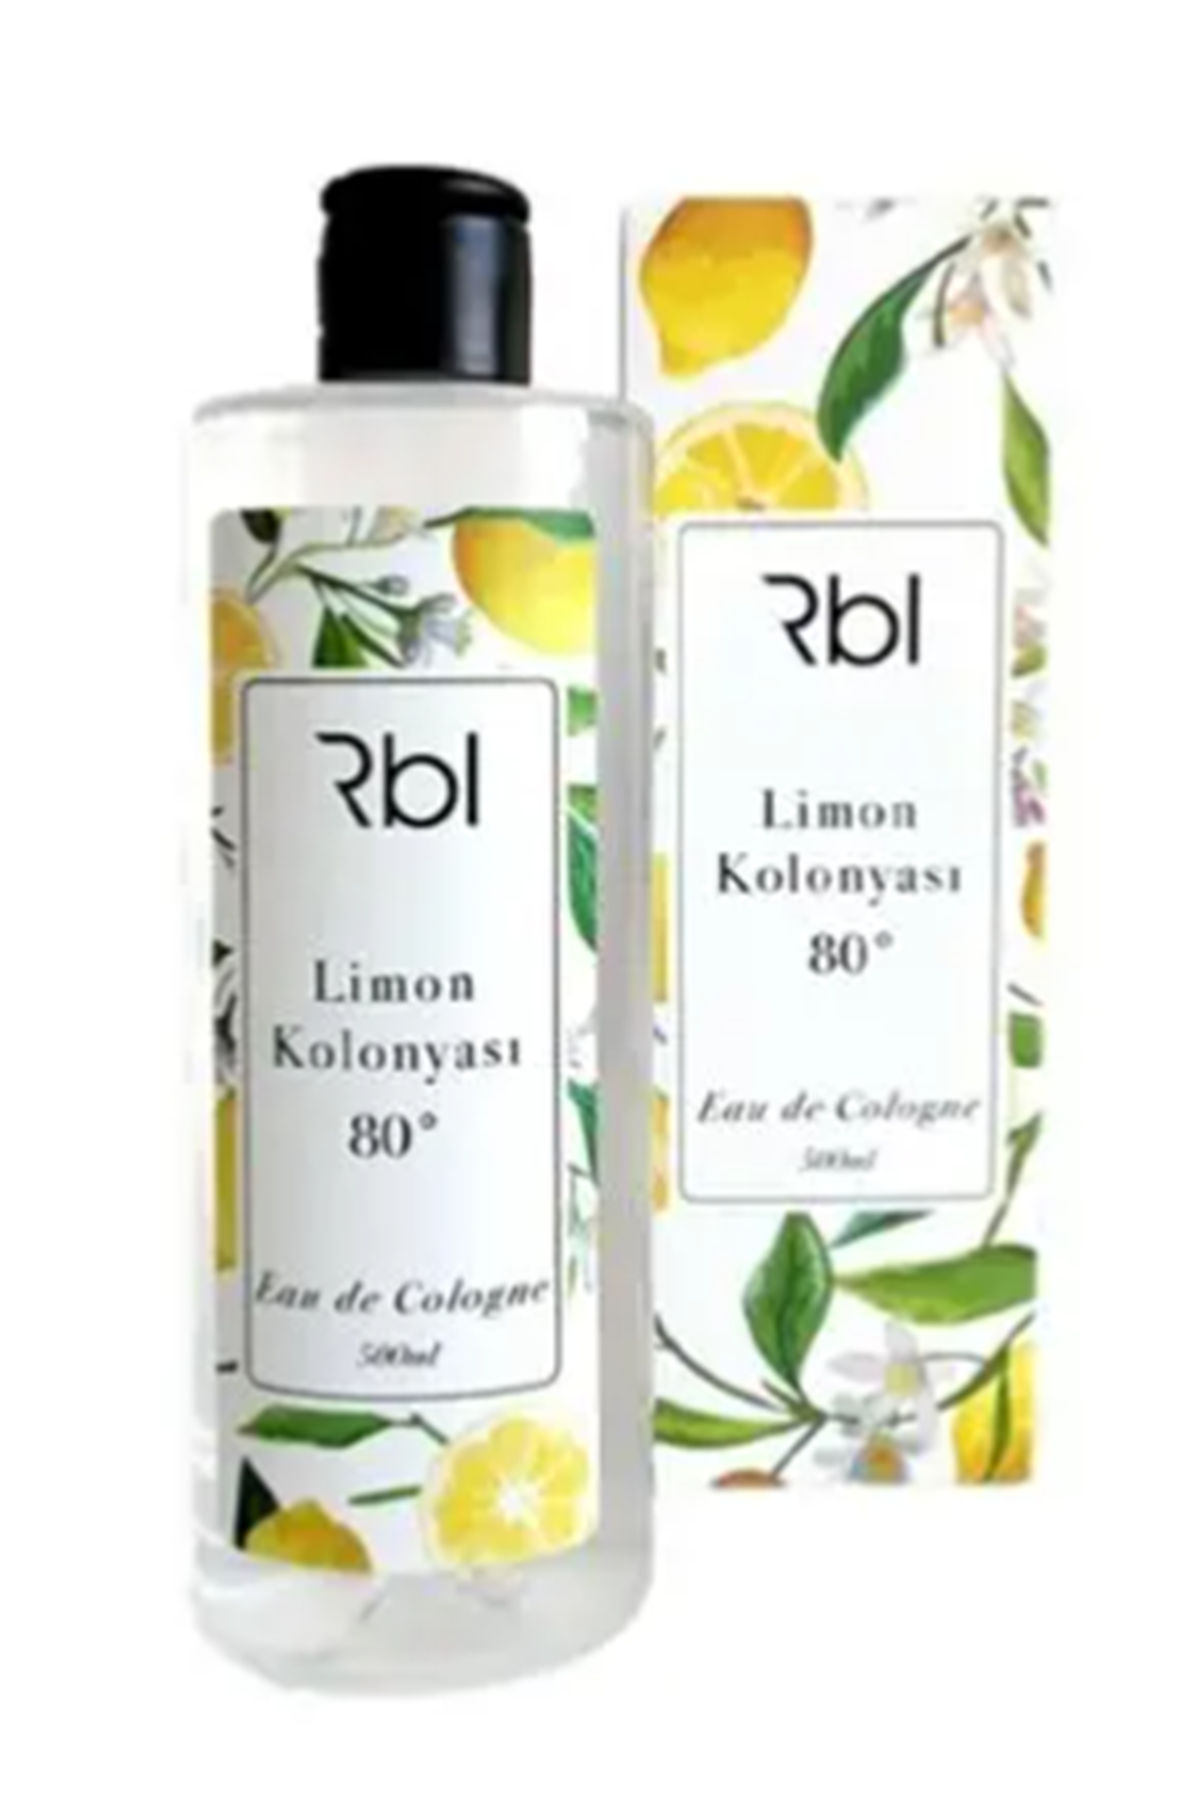 Rebul Limon Kolonyası 500 ML (Pet Şişe)